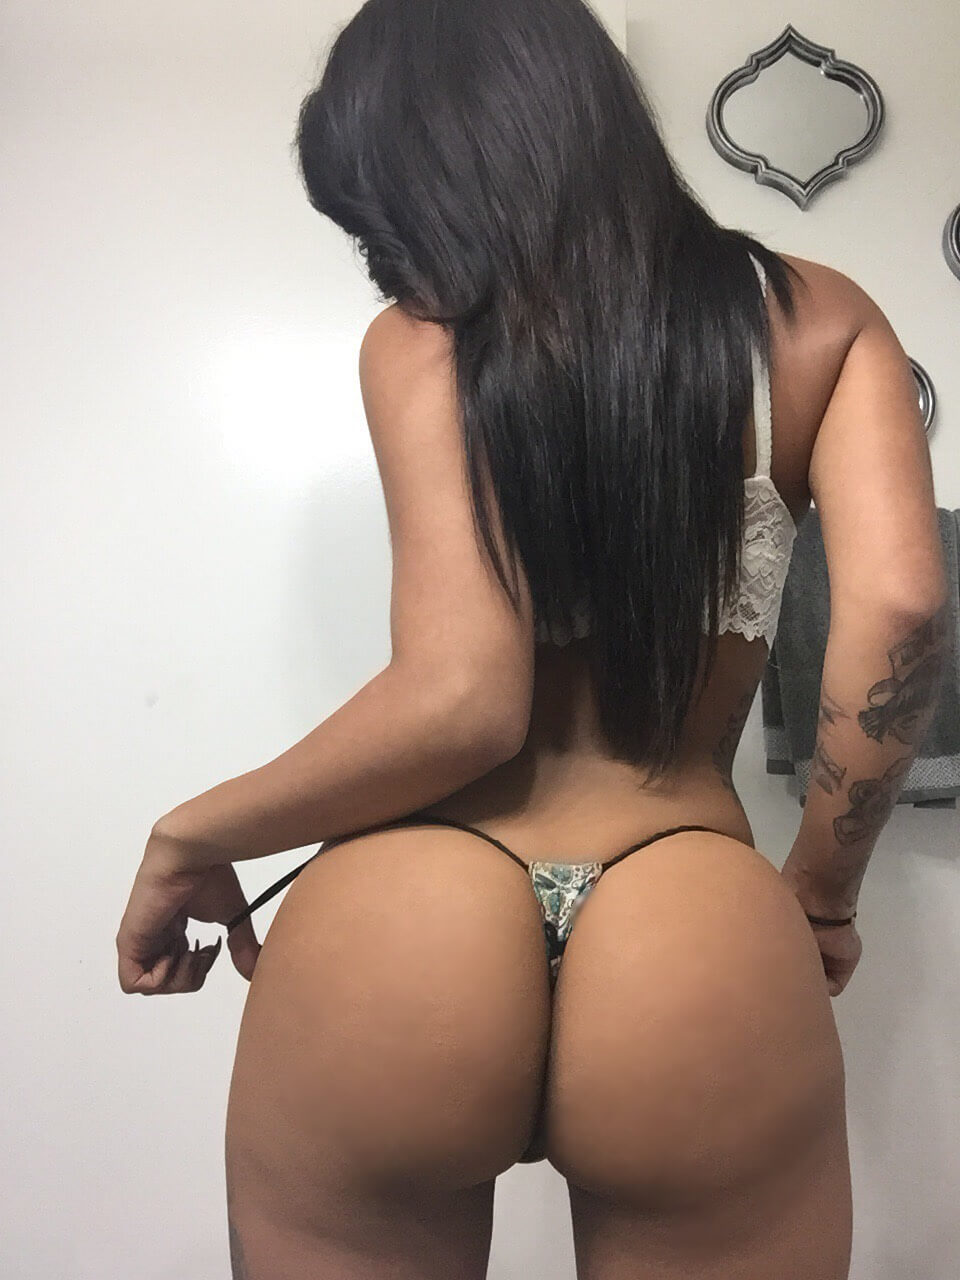 Audrina de Leon big butt shemale